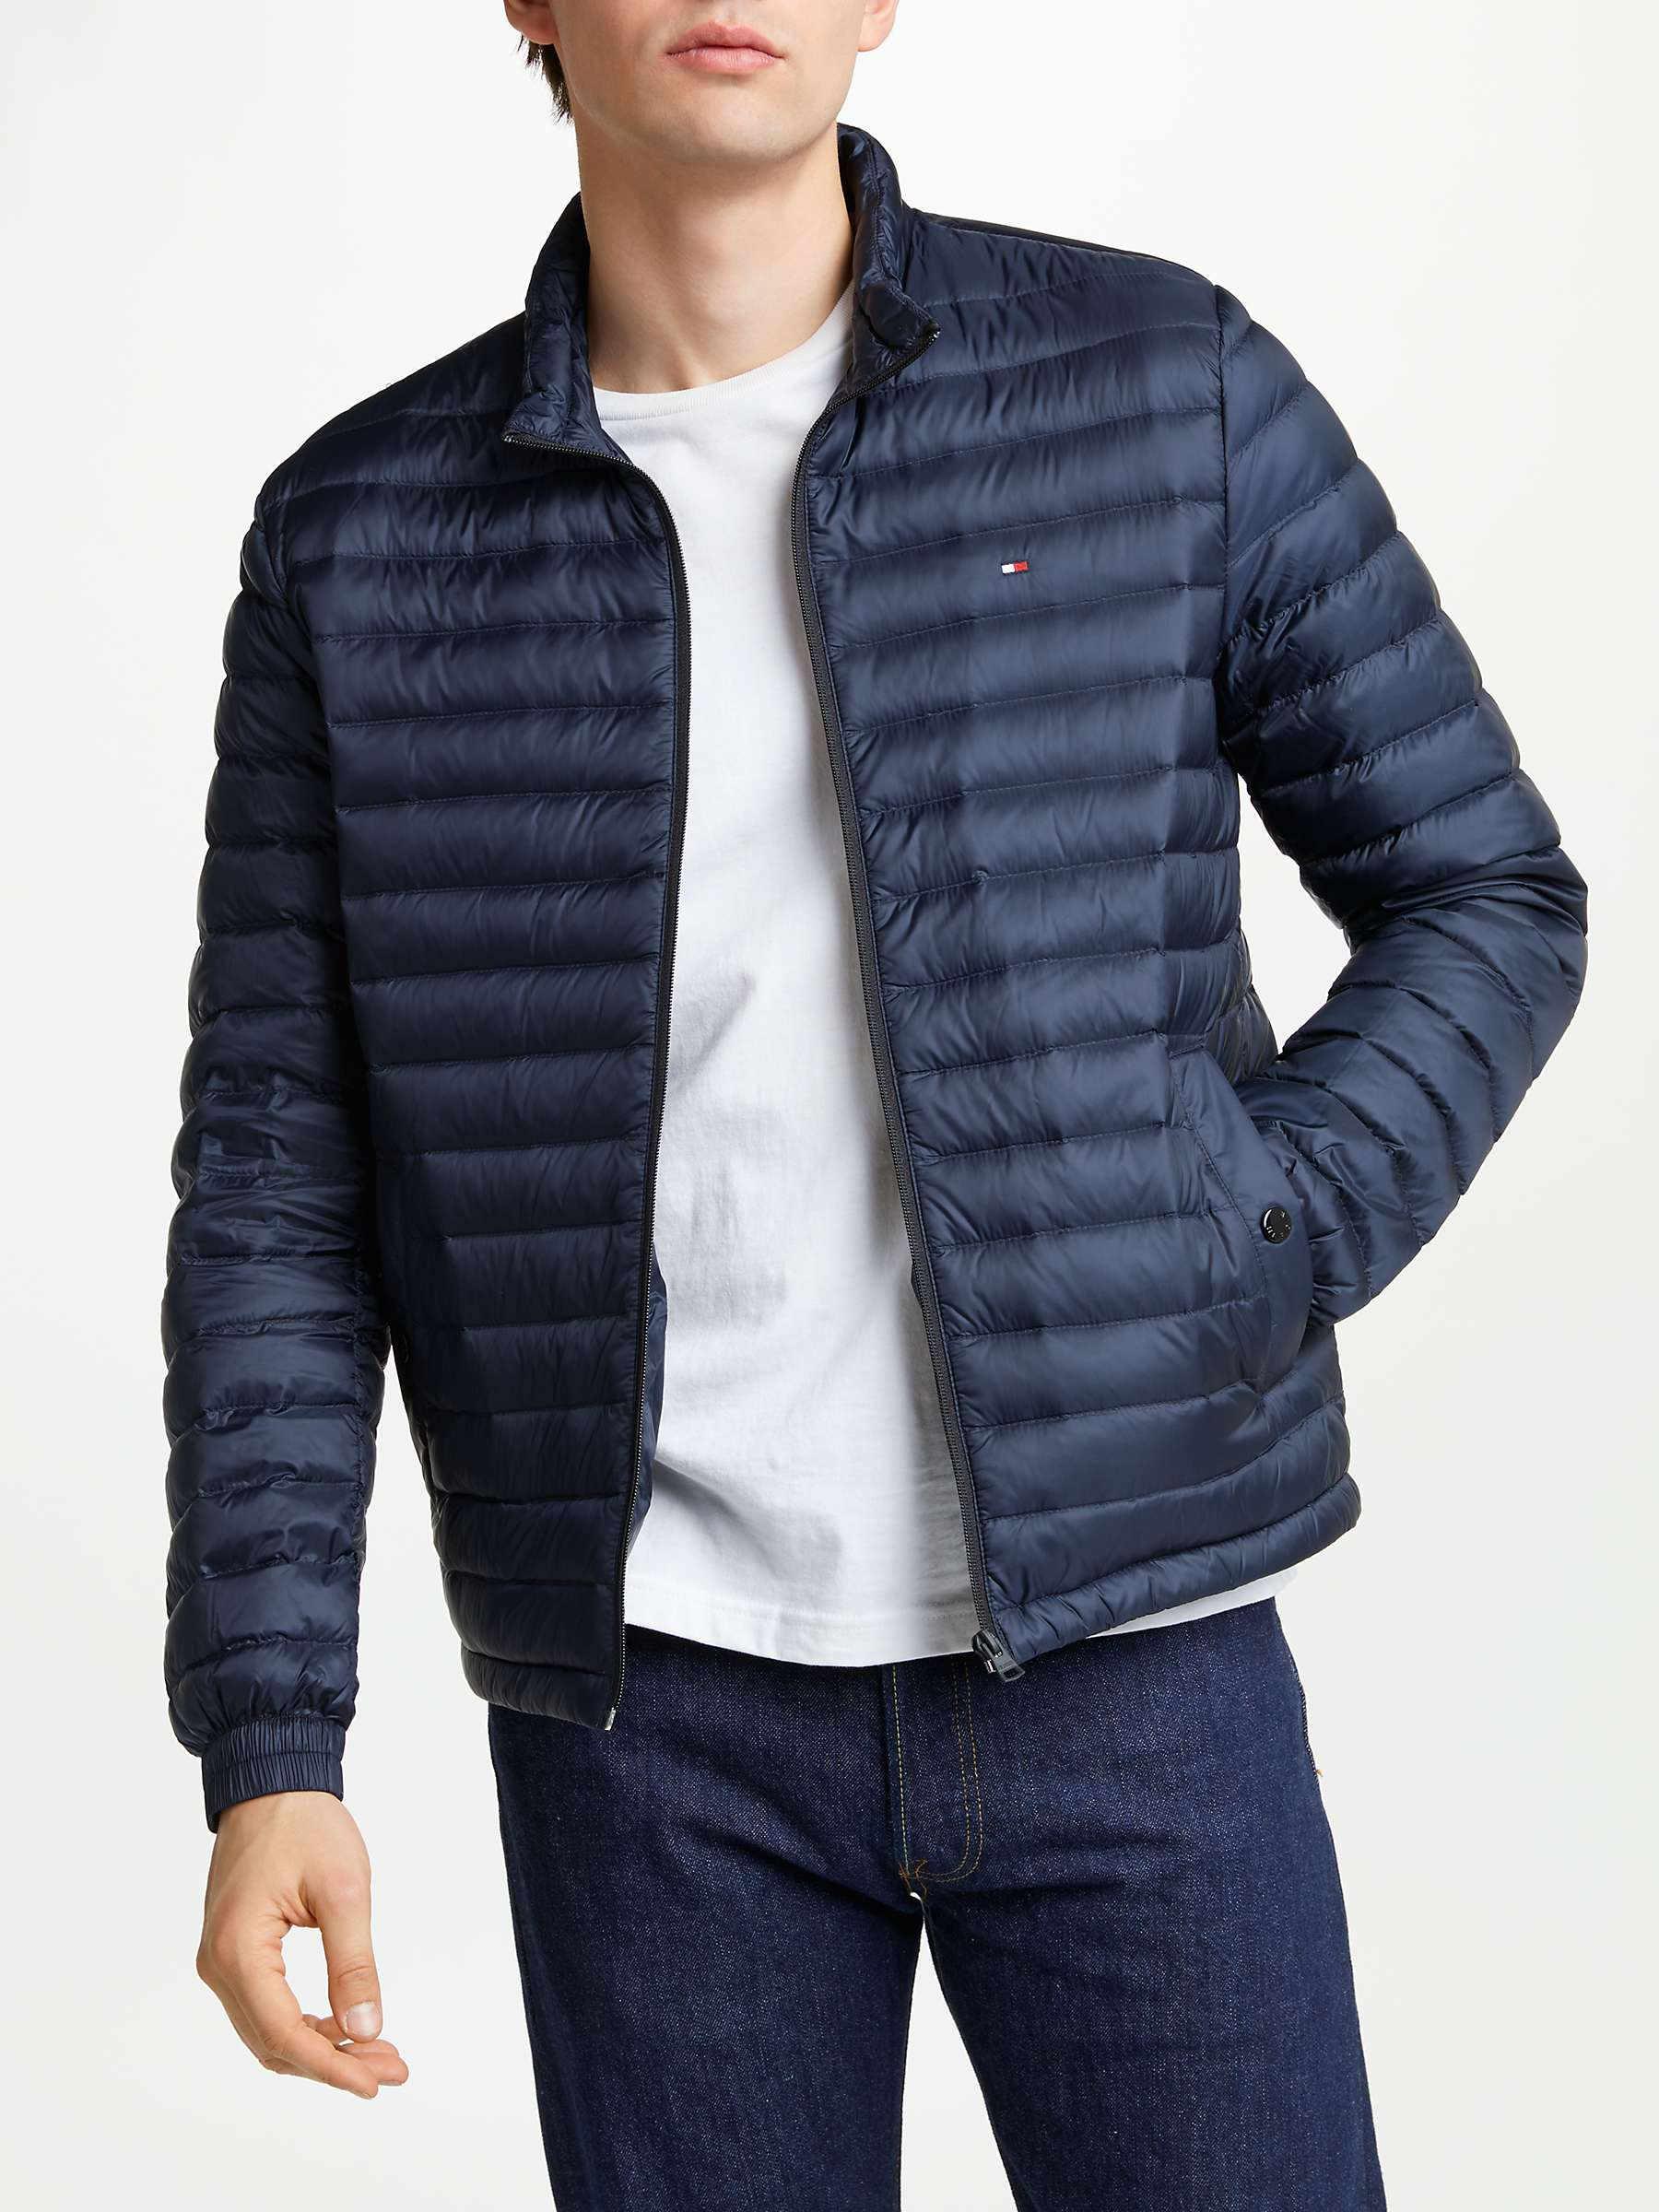 Buy Authentic luxury fashion styles Tommy Hilfiger Packable Down Bomber Jacket, Navy at John ...